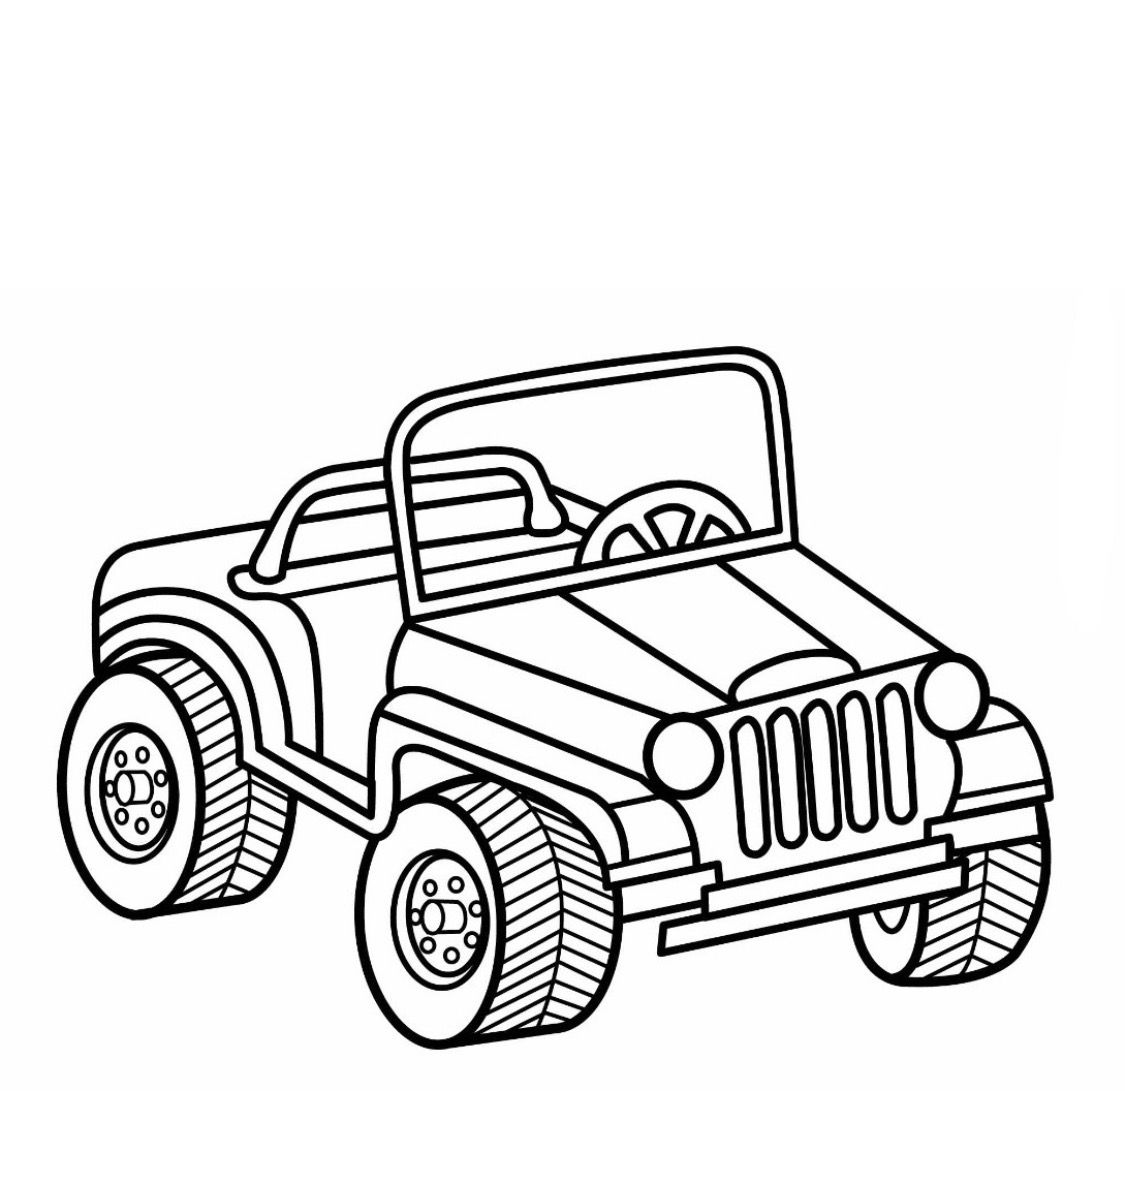 Jeep Coloring Page | Boy's Coloring Book | Cars Coloring